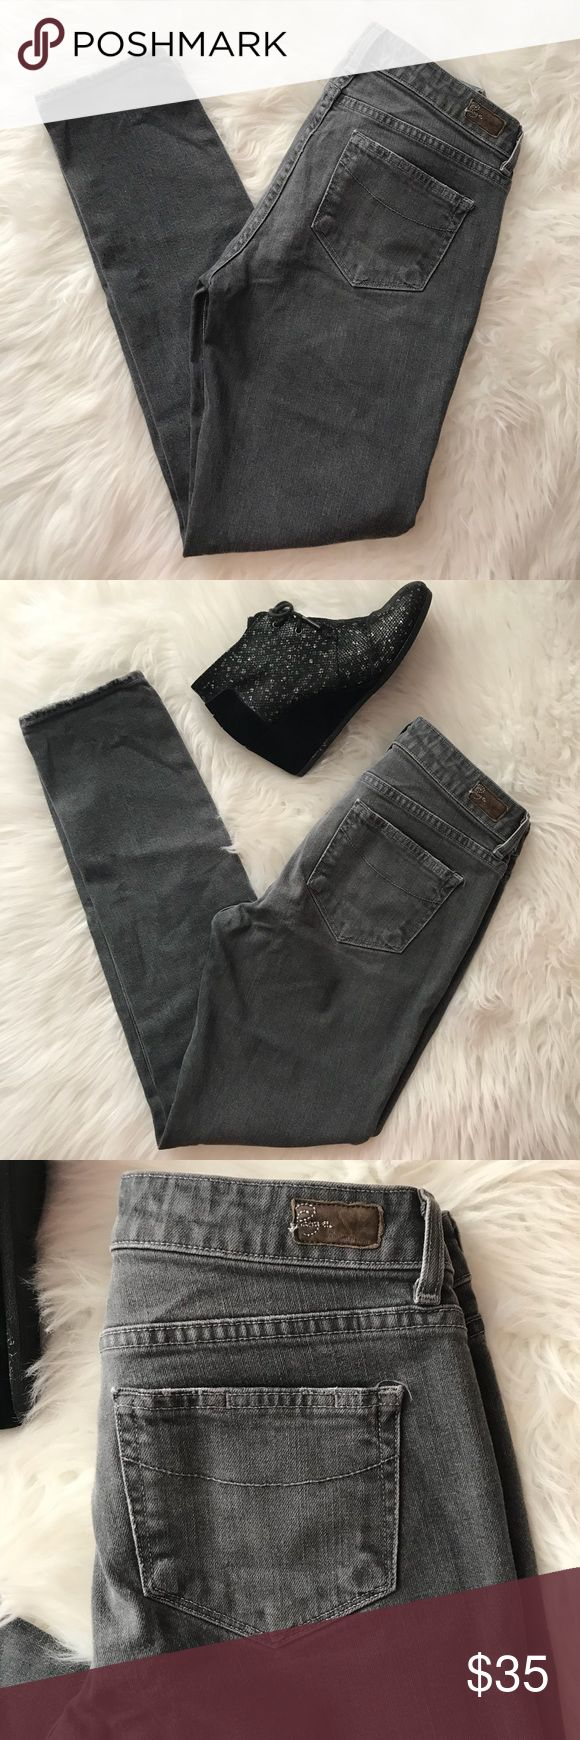 "Paige Skyline Ankle Skinny Peg Jeans sz 28 Paige Skyline Ankle Skinny Peg Jeans in dark grey.  Waist 15.5"". Inseam 29"". Rise 8"". Soft broken in jeans in great preowned condition. Paige Jeans Jeans Skinny"